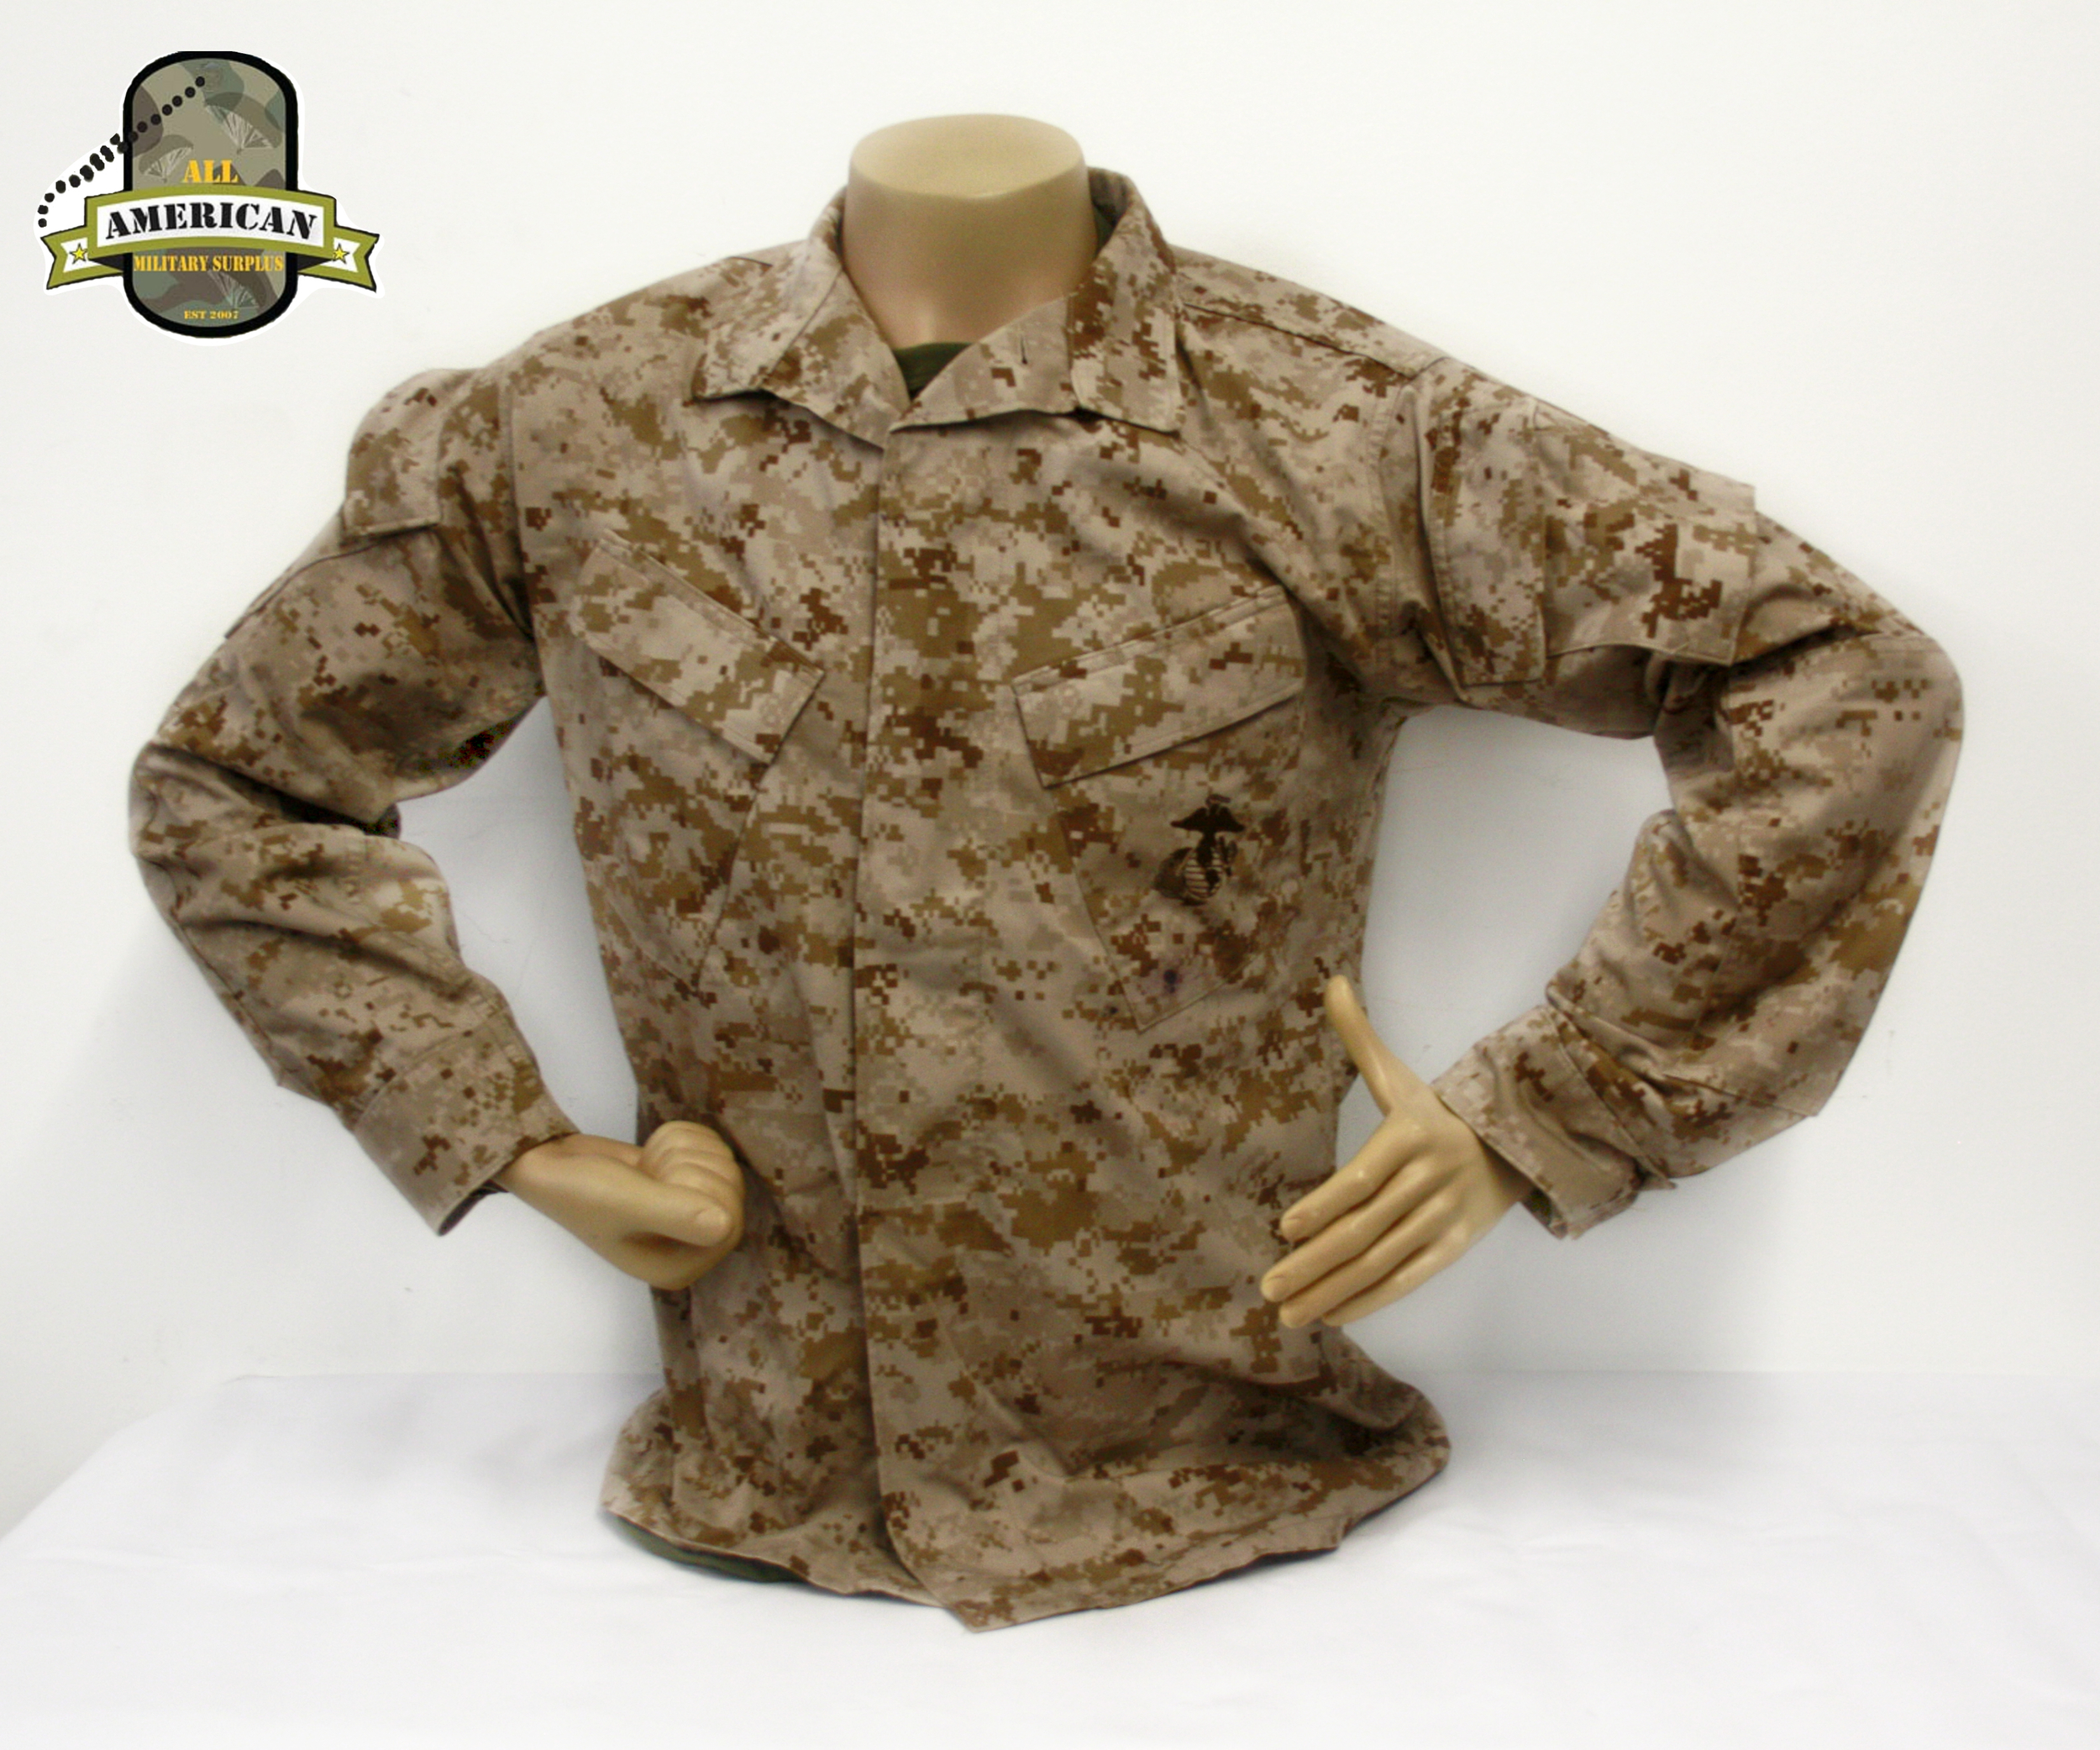 USMC Desert Marpat Uniform Jacket and Trousers — All American Military  Surplus